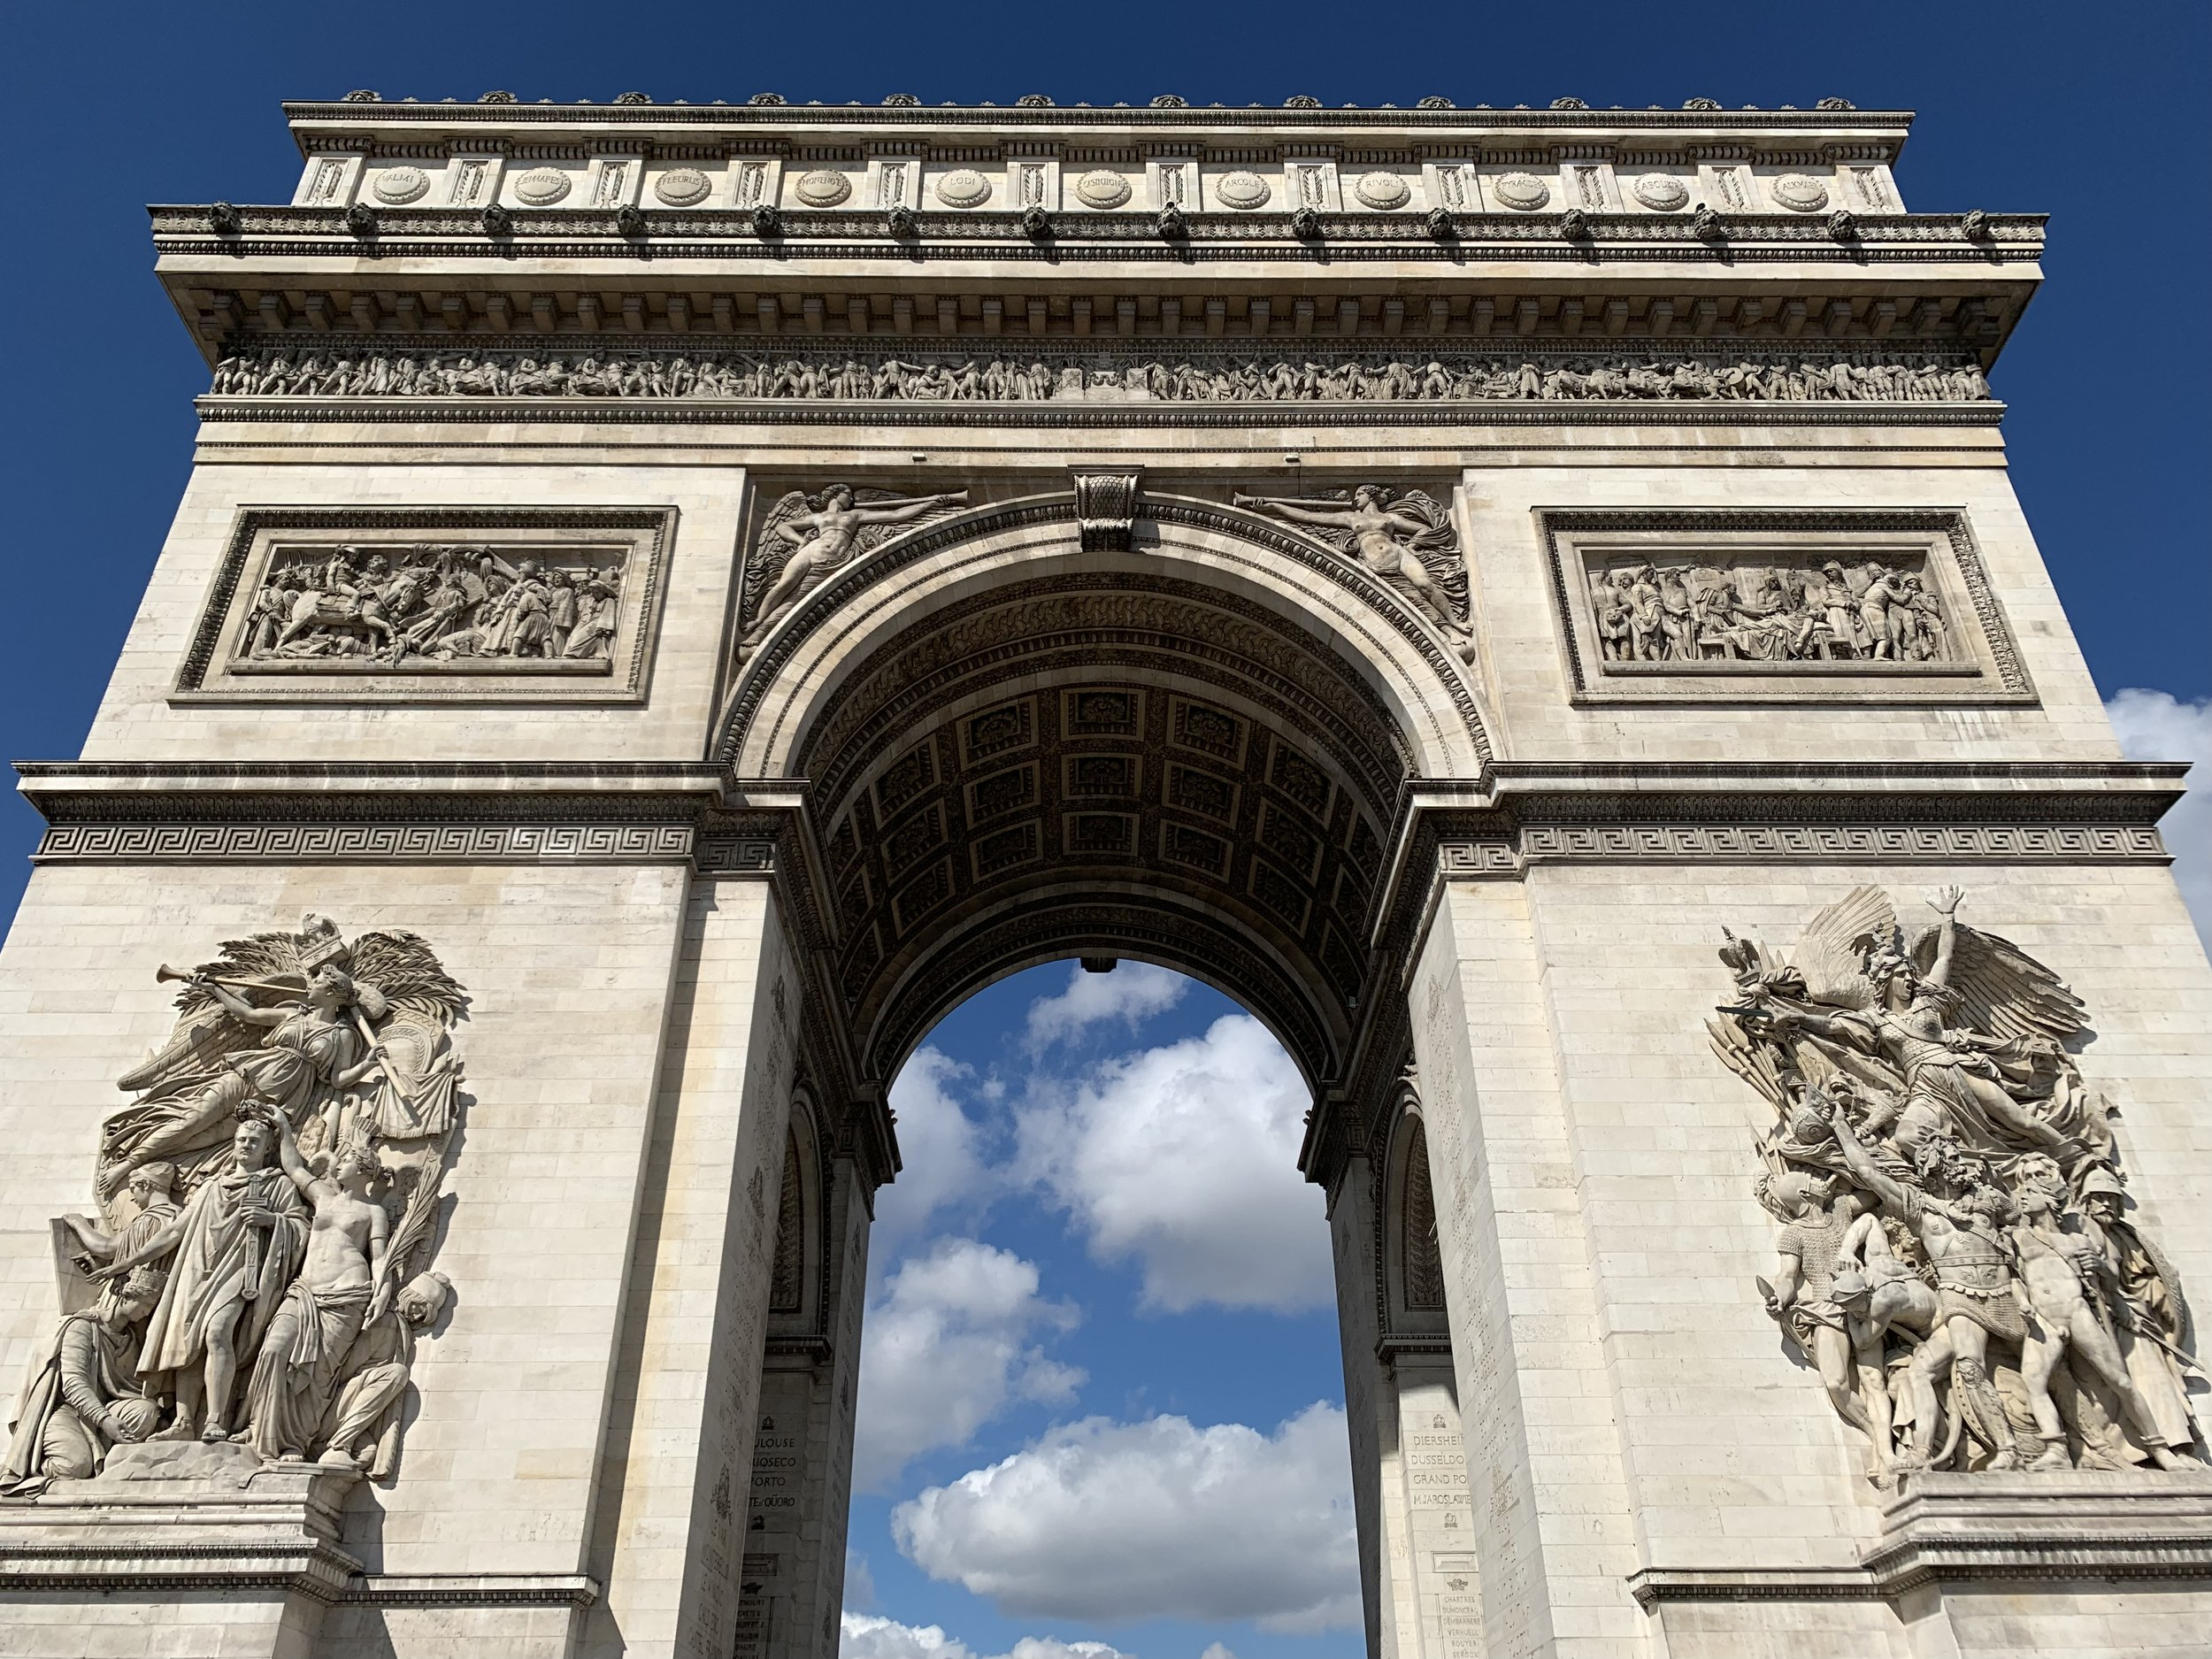 Looking up from the foot of the Arc De Triumphe